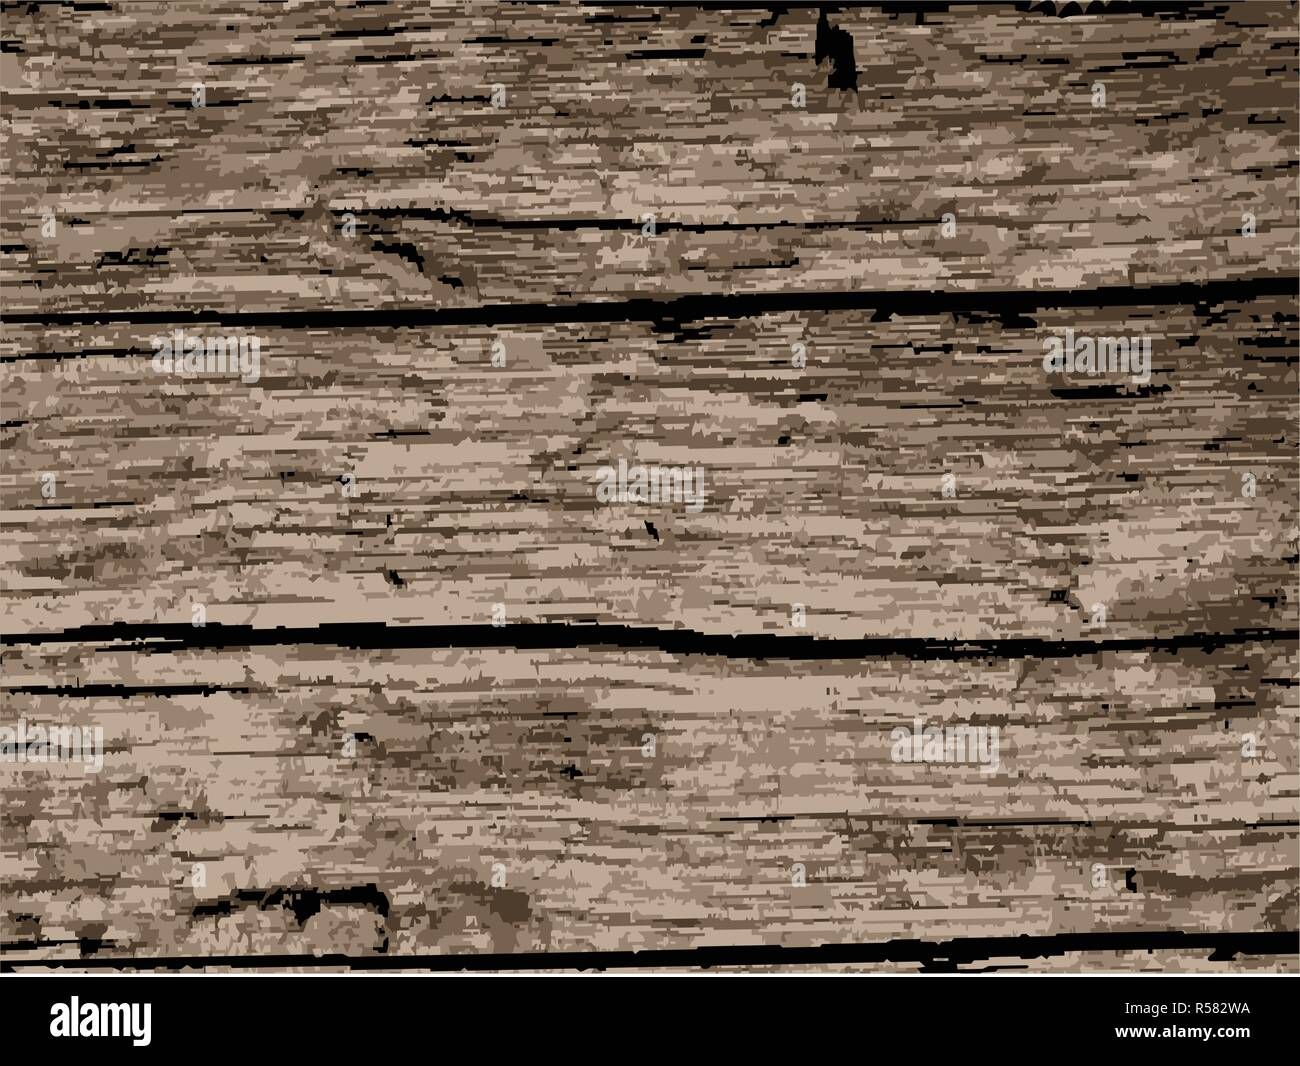 A Background Of Old Driftwood That Is Well Worn Stock Vector Image Art Alamy